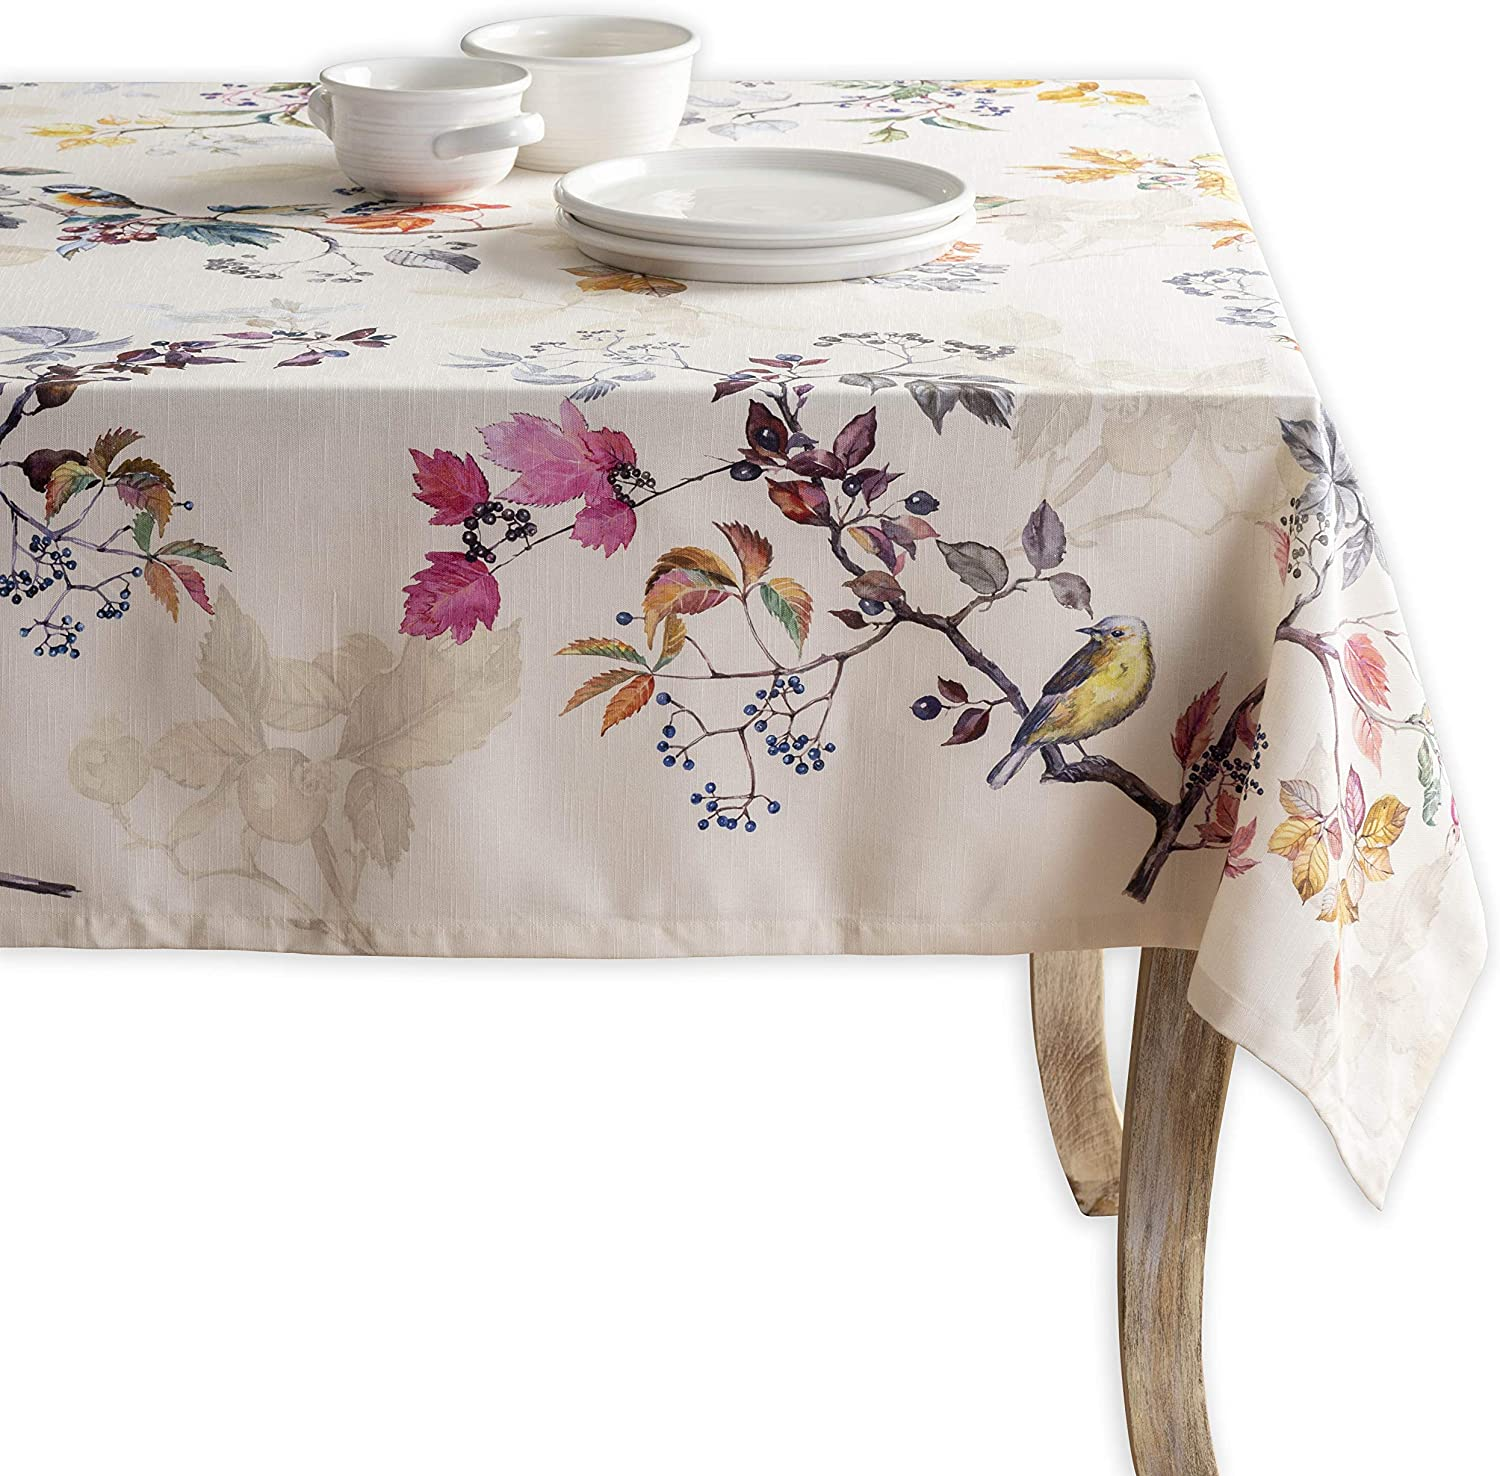 Maison d' Hermine Equinoxe 100% Cotton Tablecloth for Kitchen Dining | Tabletop | Decoration | Parties | Weddings | Thanksgiving/Christmas [Beige (Rectangle, 60 Inch by 90 Inch)]